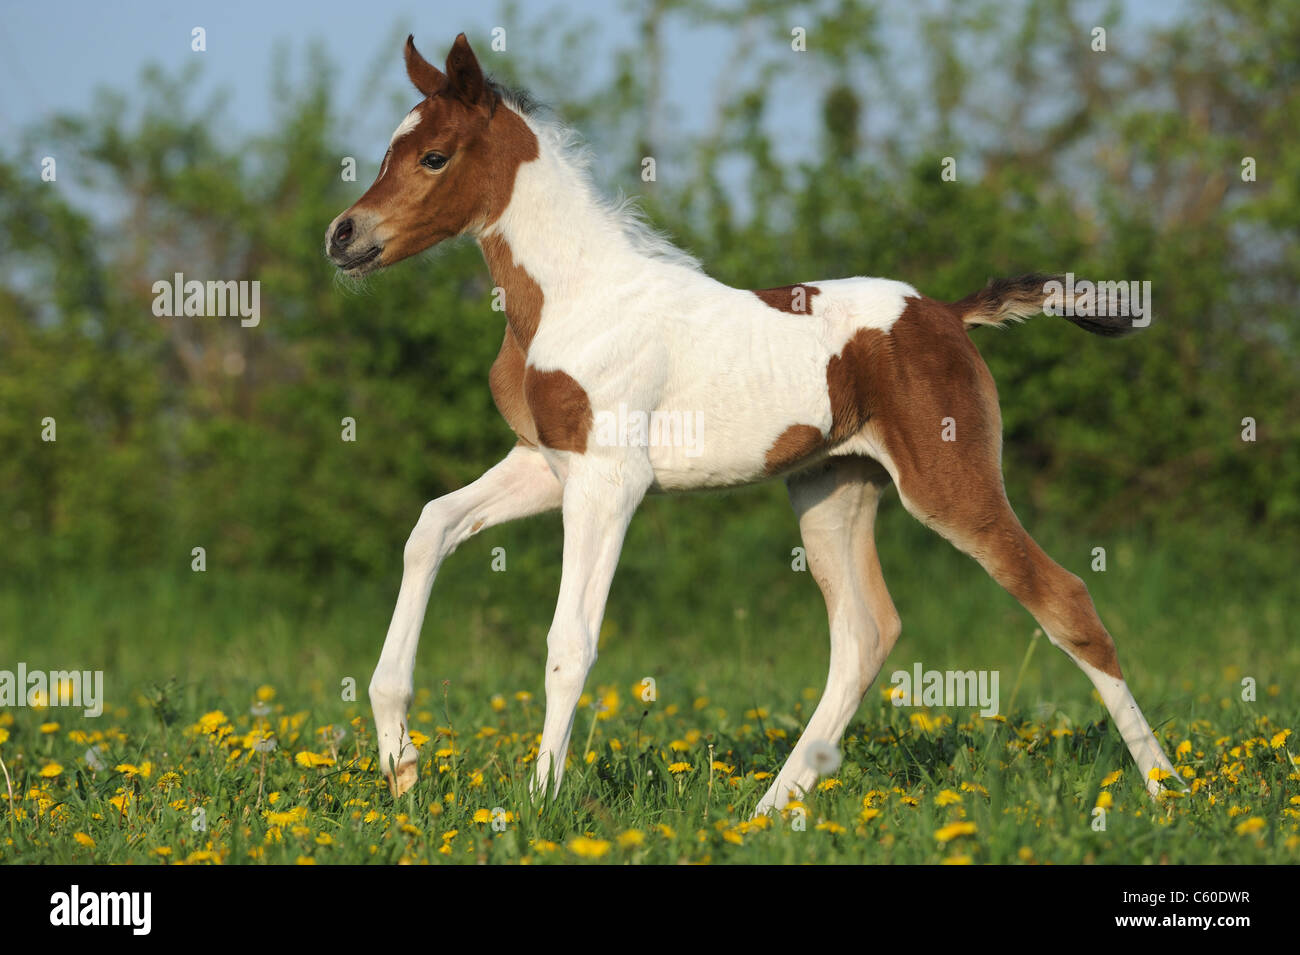 Arabian Pinto Horse (Equus ferus caballus), foal in a gallop on a meadow. - Stock Image